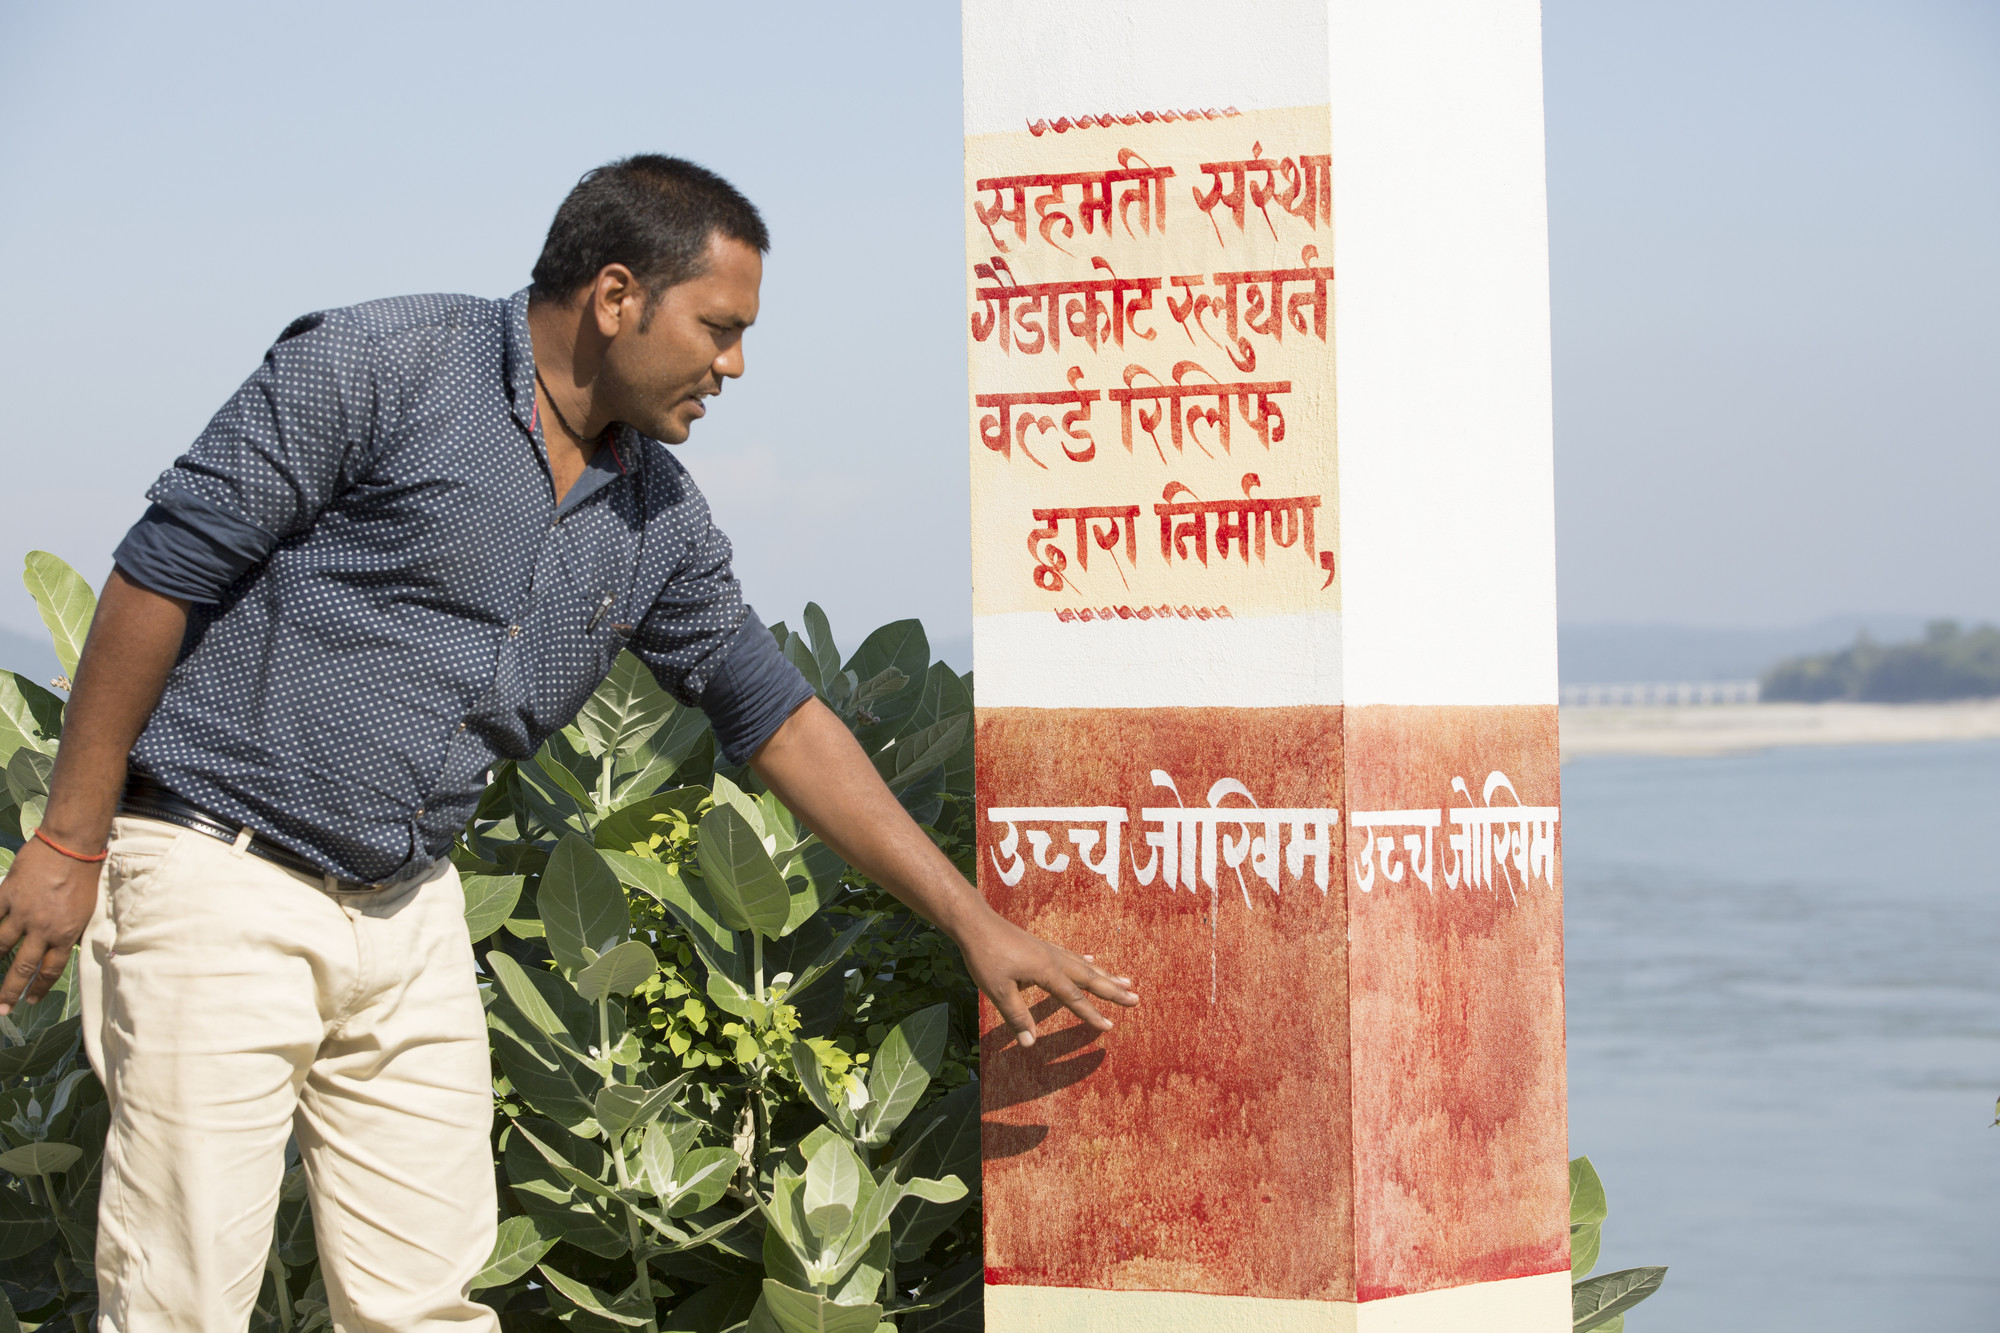 Ram Kisun Koiri, president of the local Community Disaster Management Committee (CDMC) in Narsahi, Nepal, shows visitors the flood gauge that measures water levels to indicate imminent flooding.